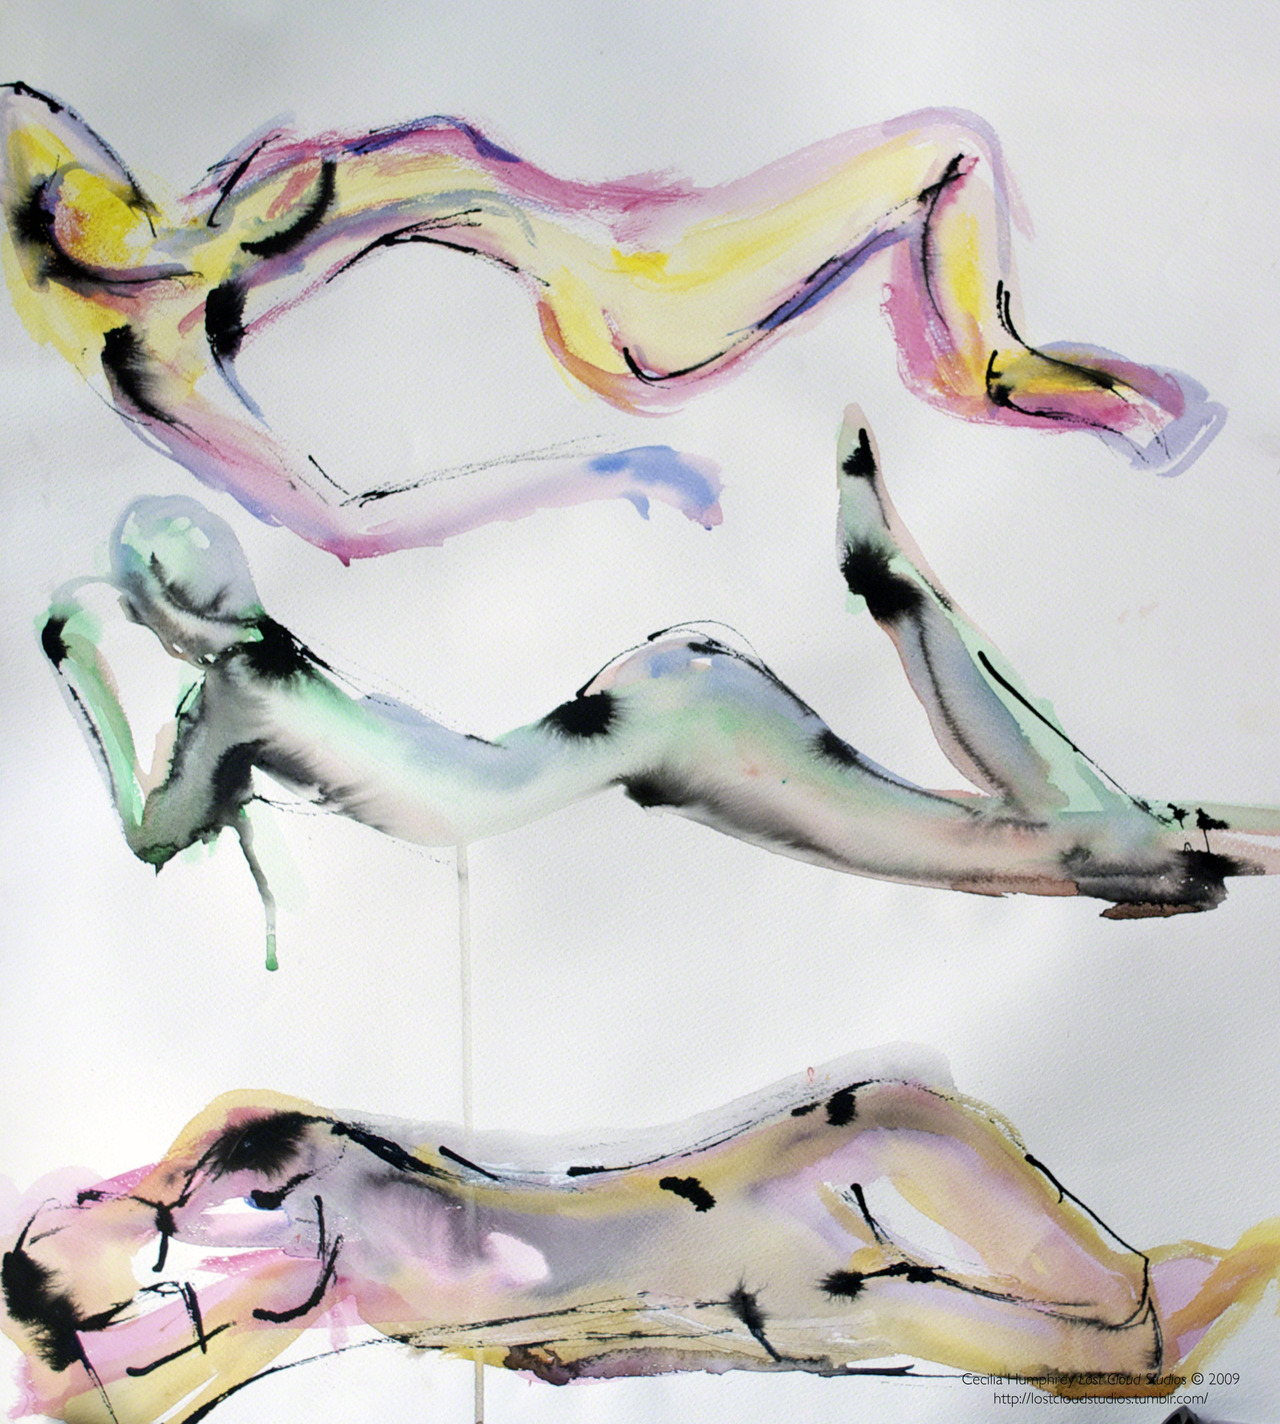 Nude Wash Studies(2009) Cecilia Humphrey. Watercolour on Canson Paper.